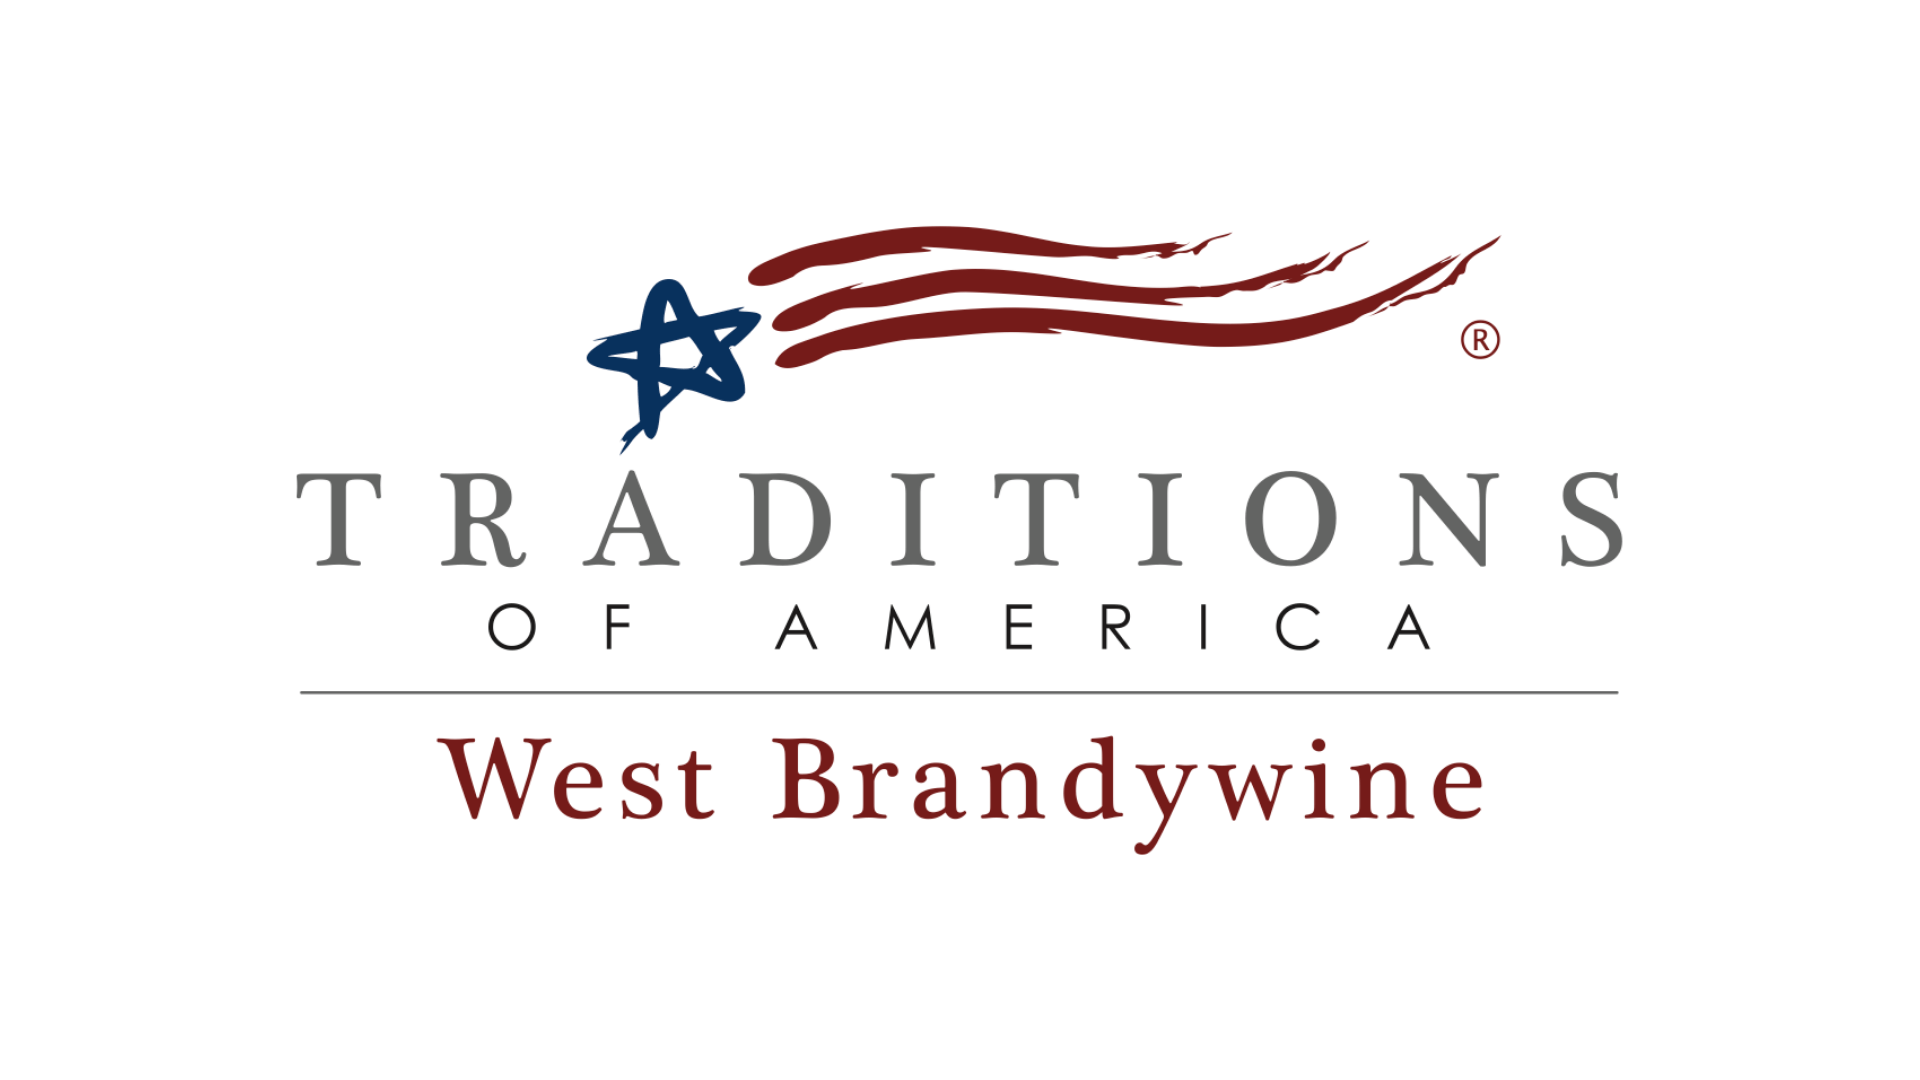 Traditions of America West Brandywine